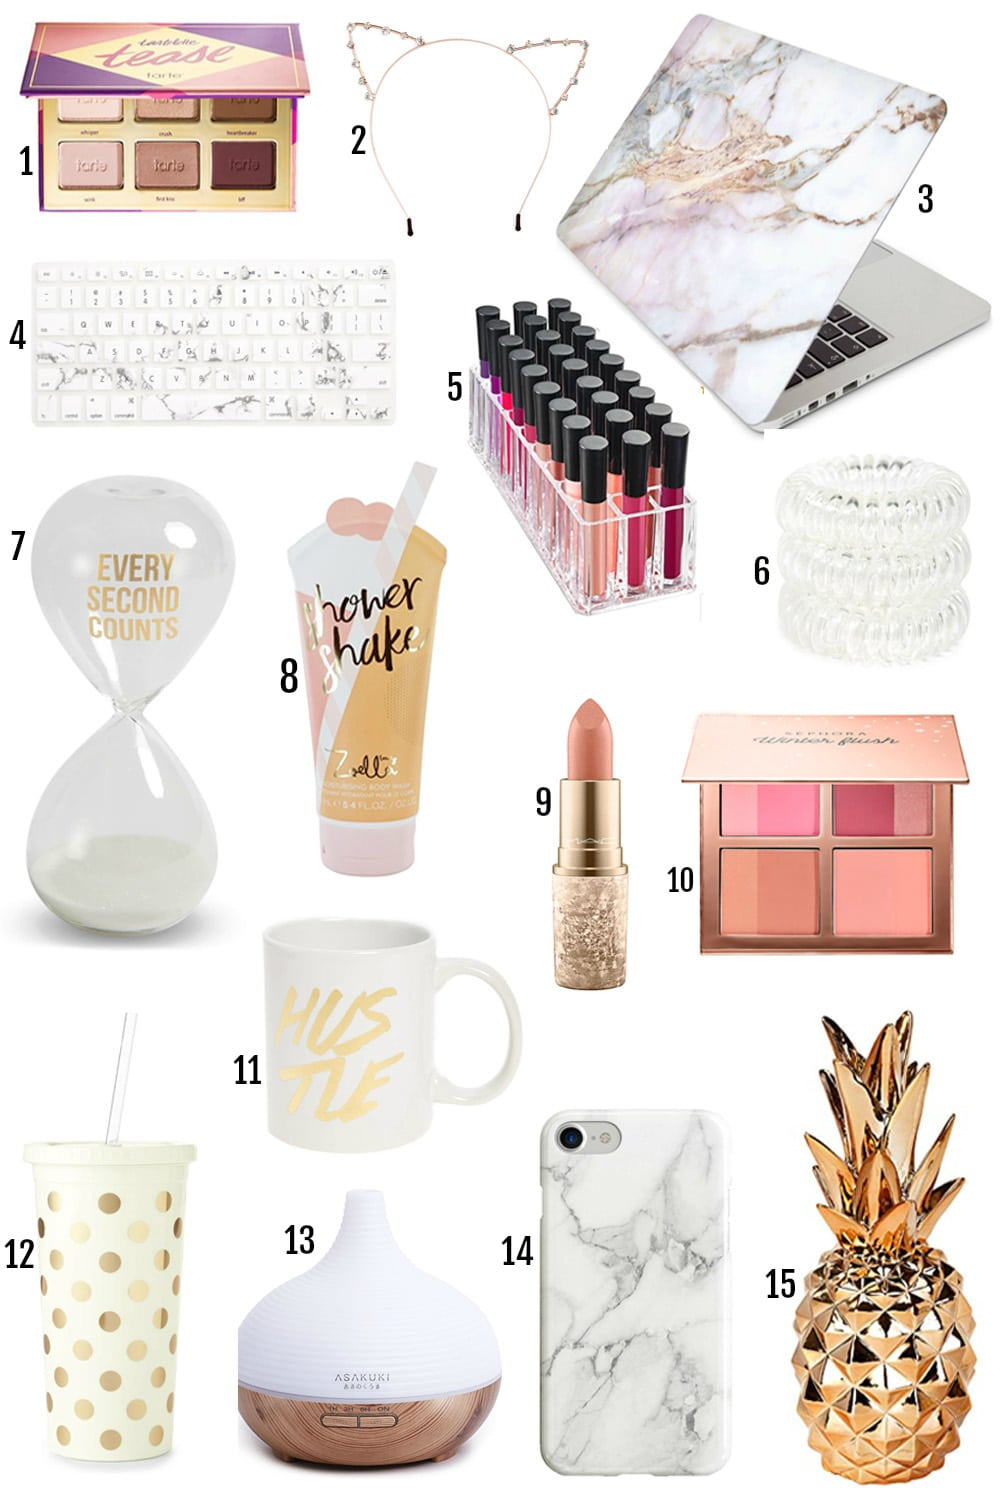 The BEST Gifts For Her Under $25 by popular Orlando style blogger Mash Elle | marble computer case and keyboard protector | glitter cat ears | polka dot kate spade tumbler | gifts for teenagers